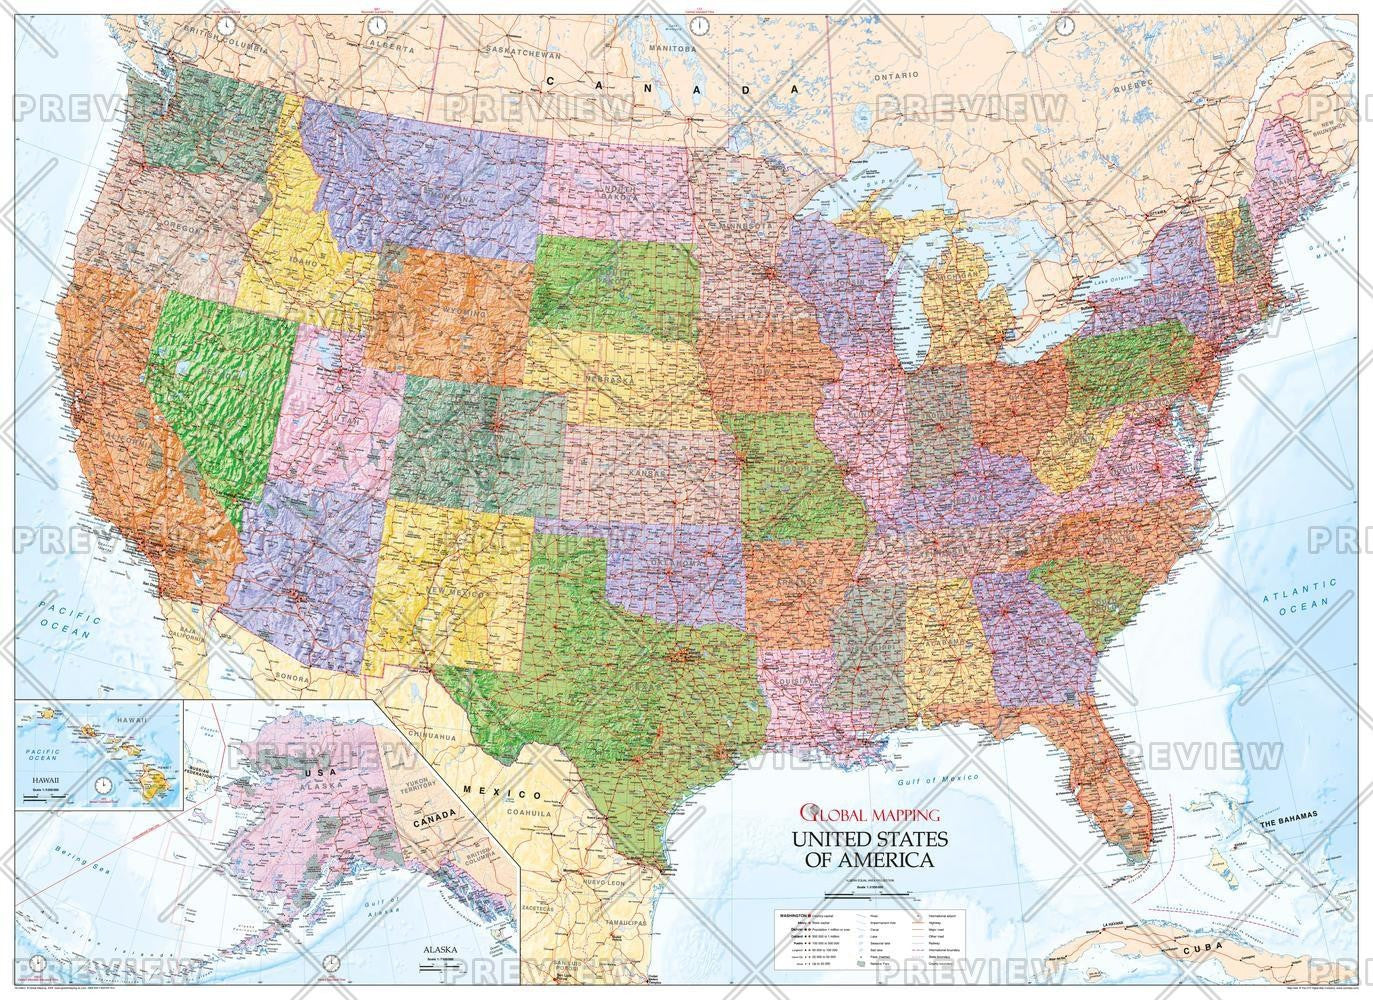 United States of America Wall Map (USA)